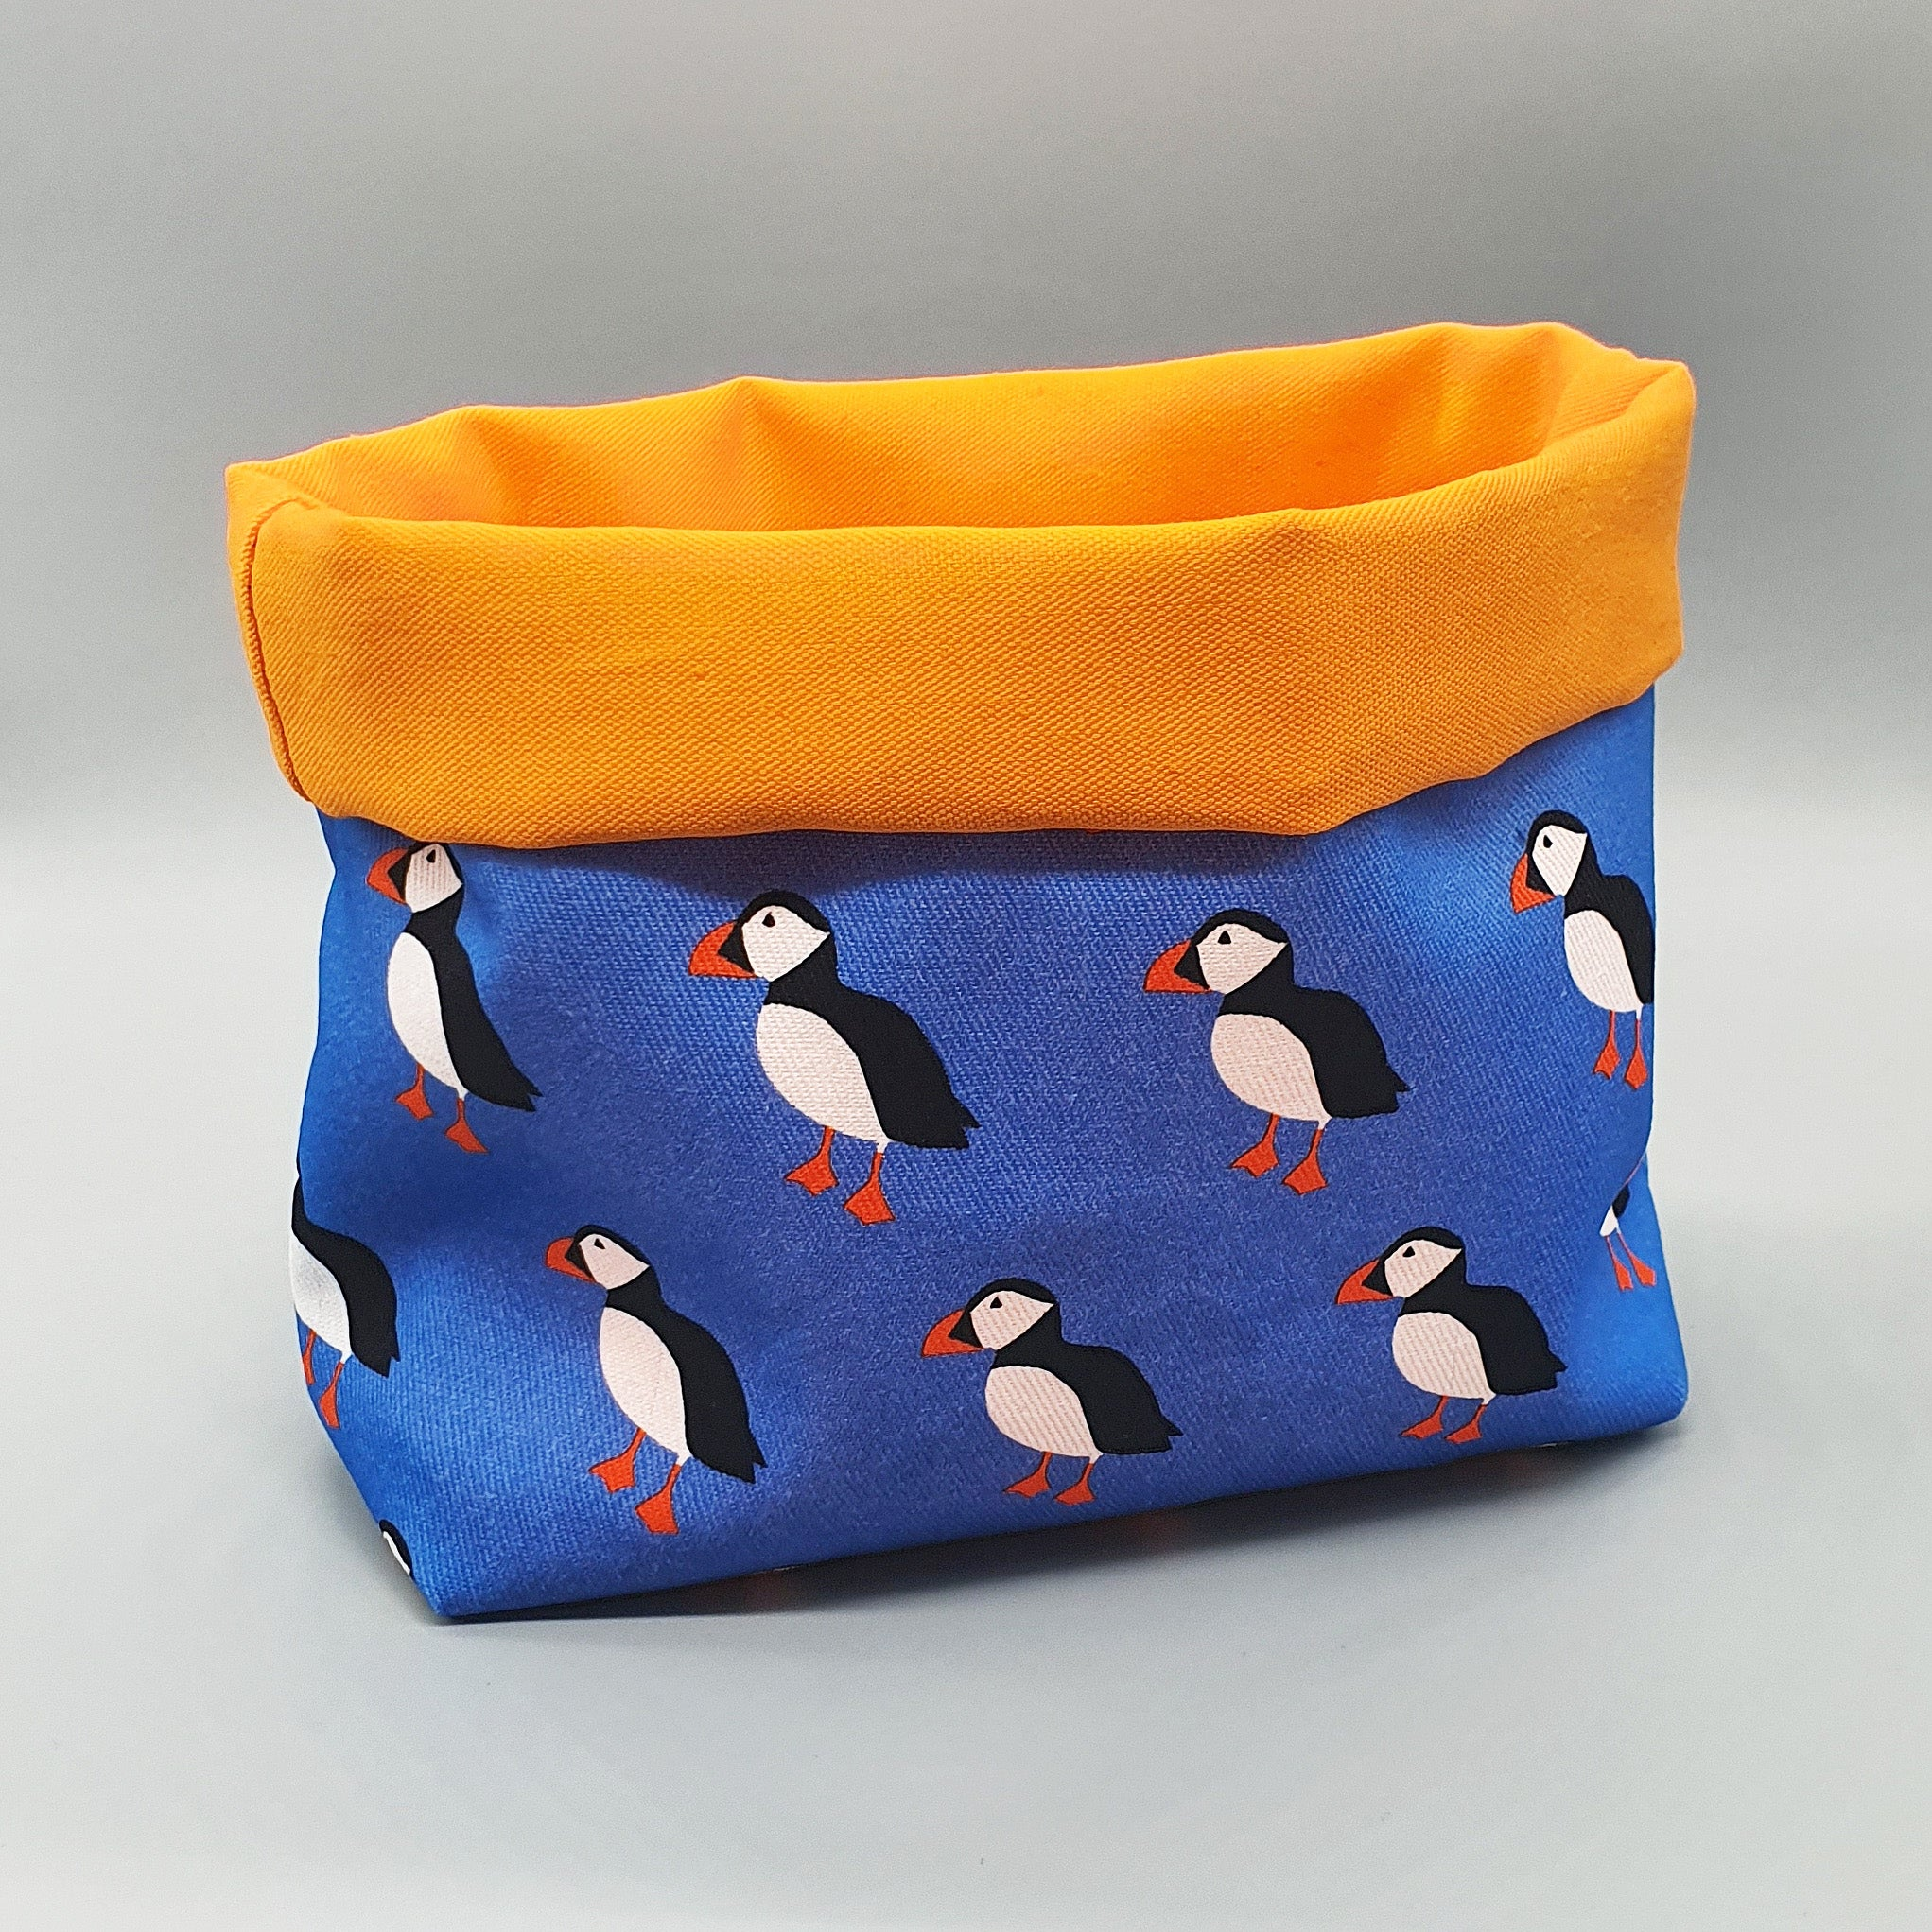 Puffin storage basket